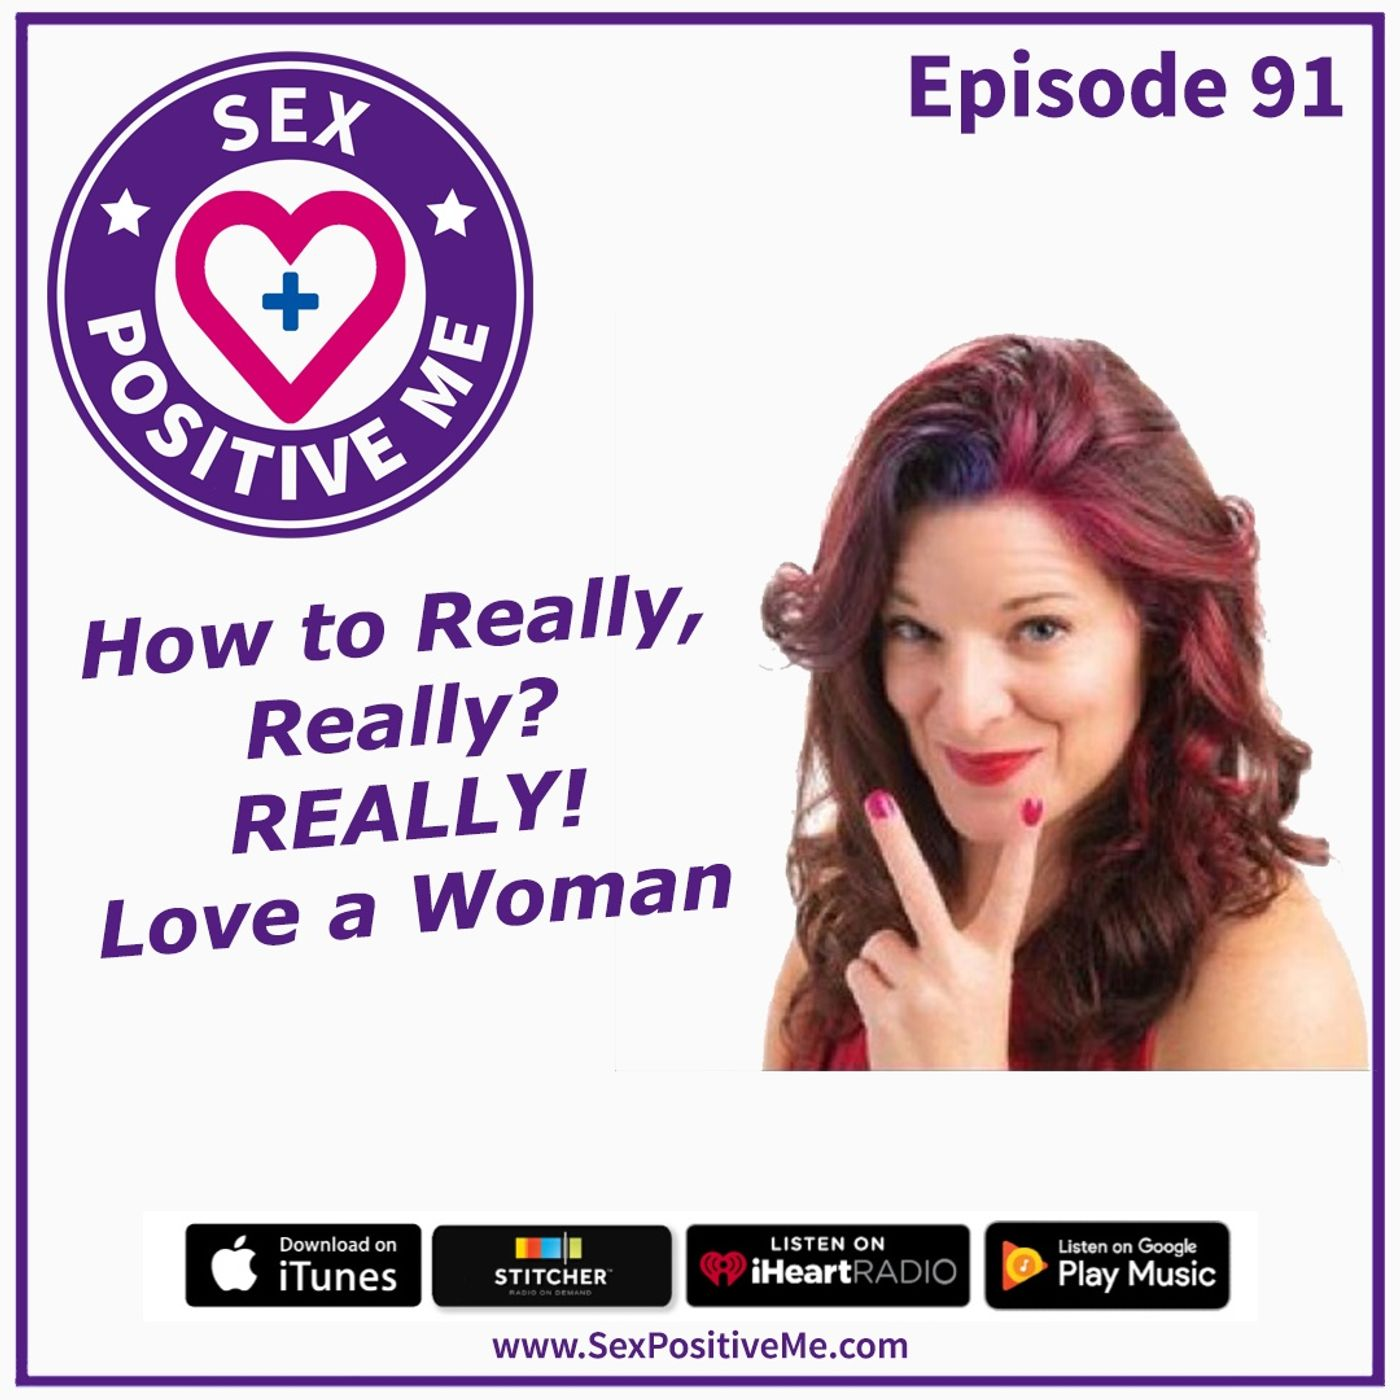 Sex Positive Me - E91: How To Really, Really? Really! Love a Woman